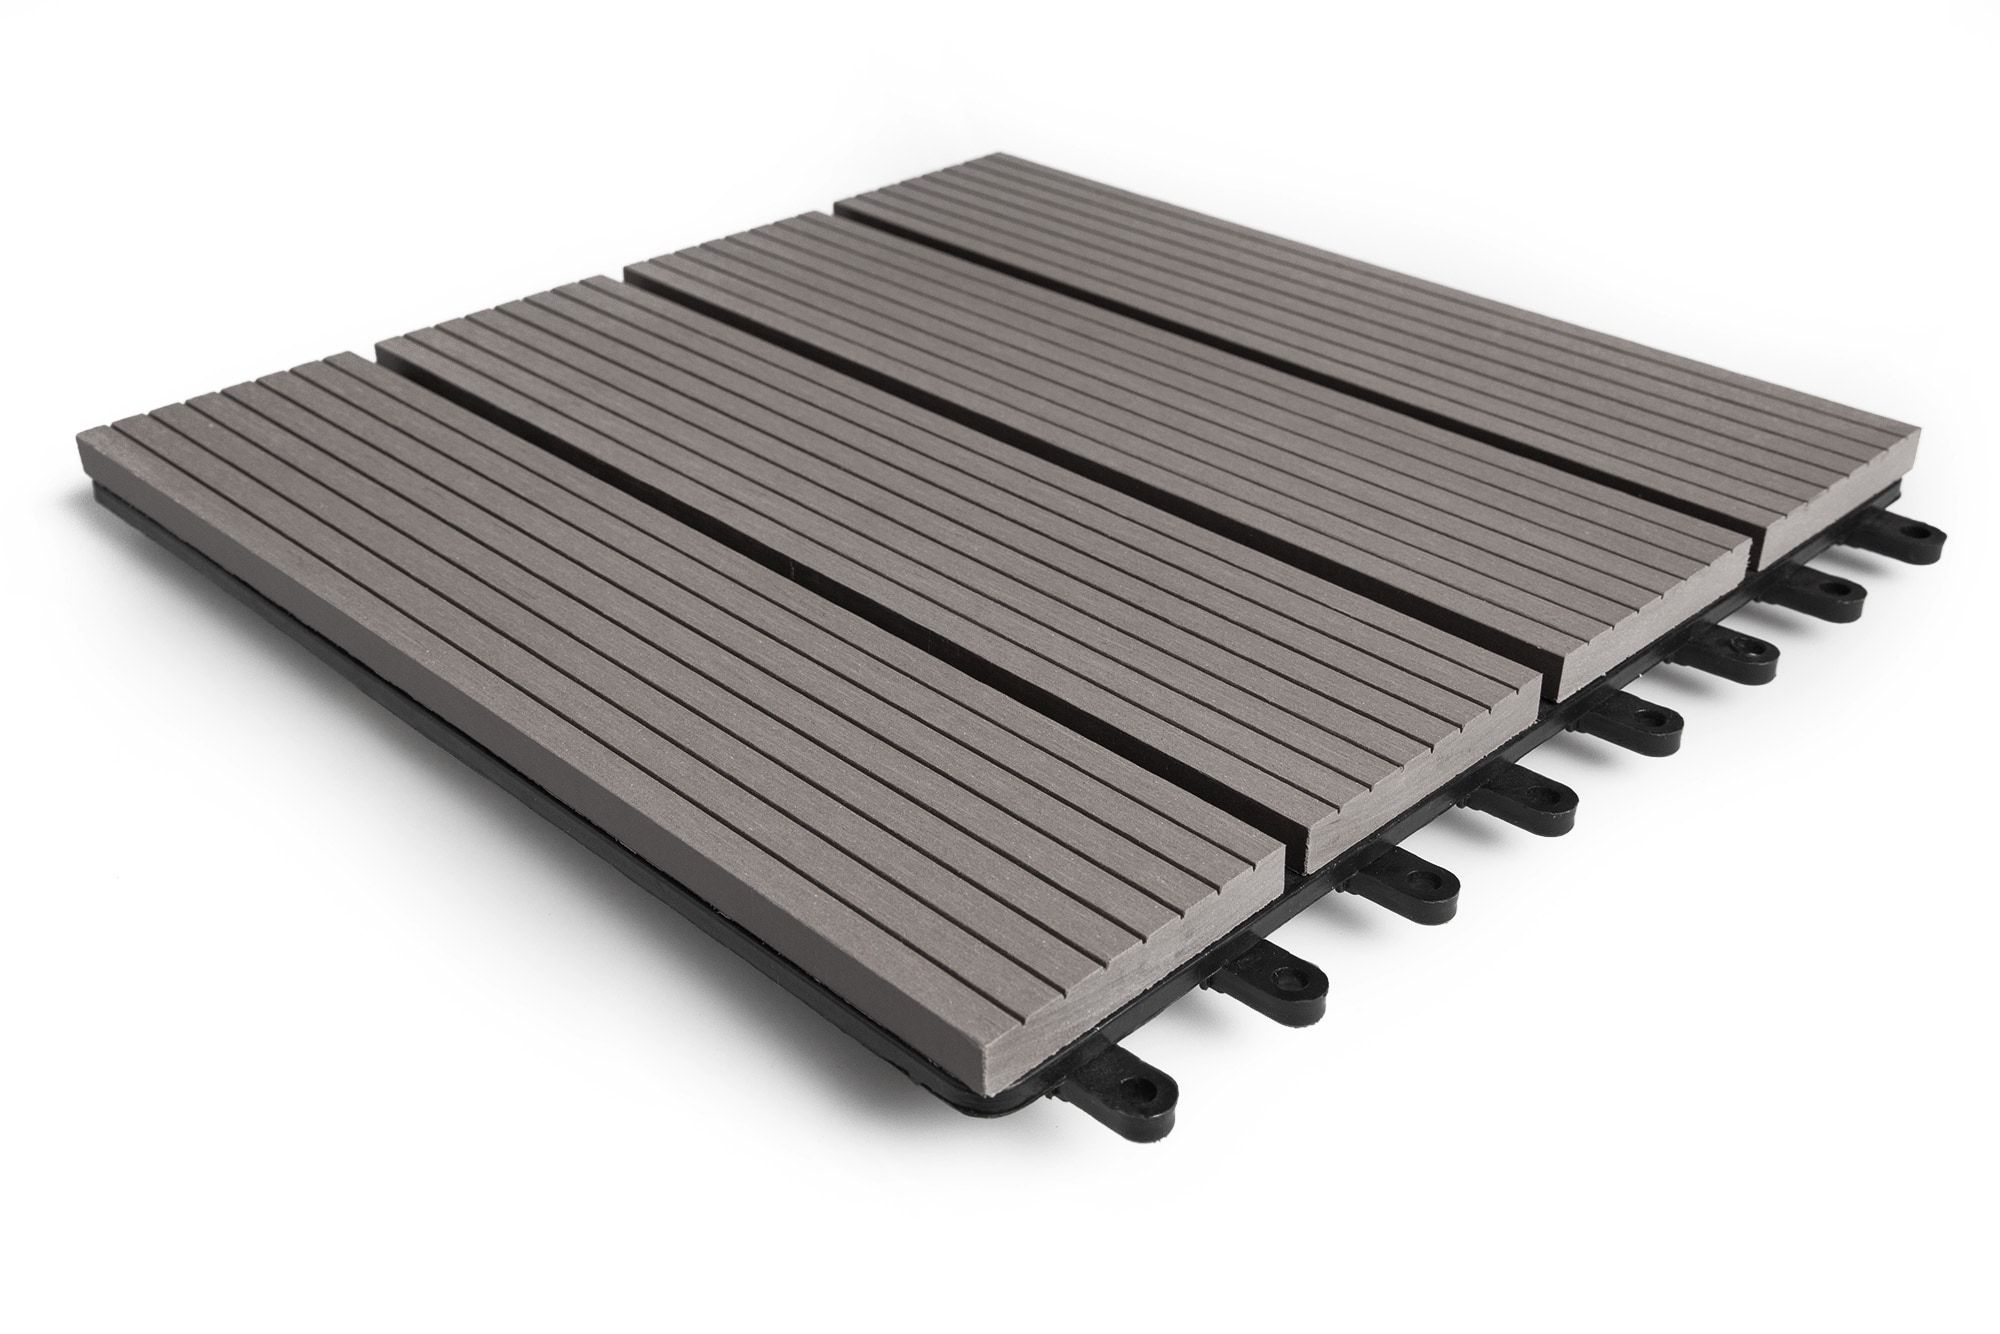 Jf Outdoor Composite Interlocking Deck Tiles Holiday Decorating pertaining to measurements 2000 X 1334